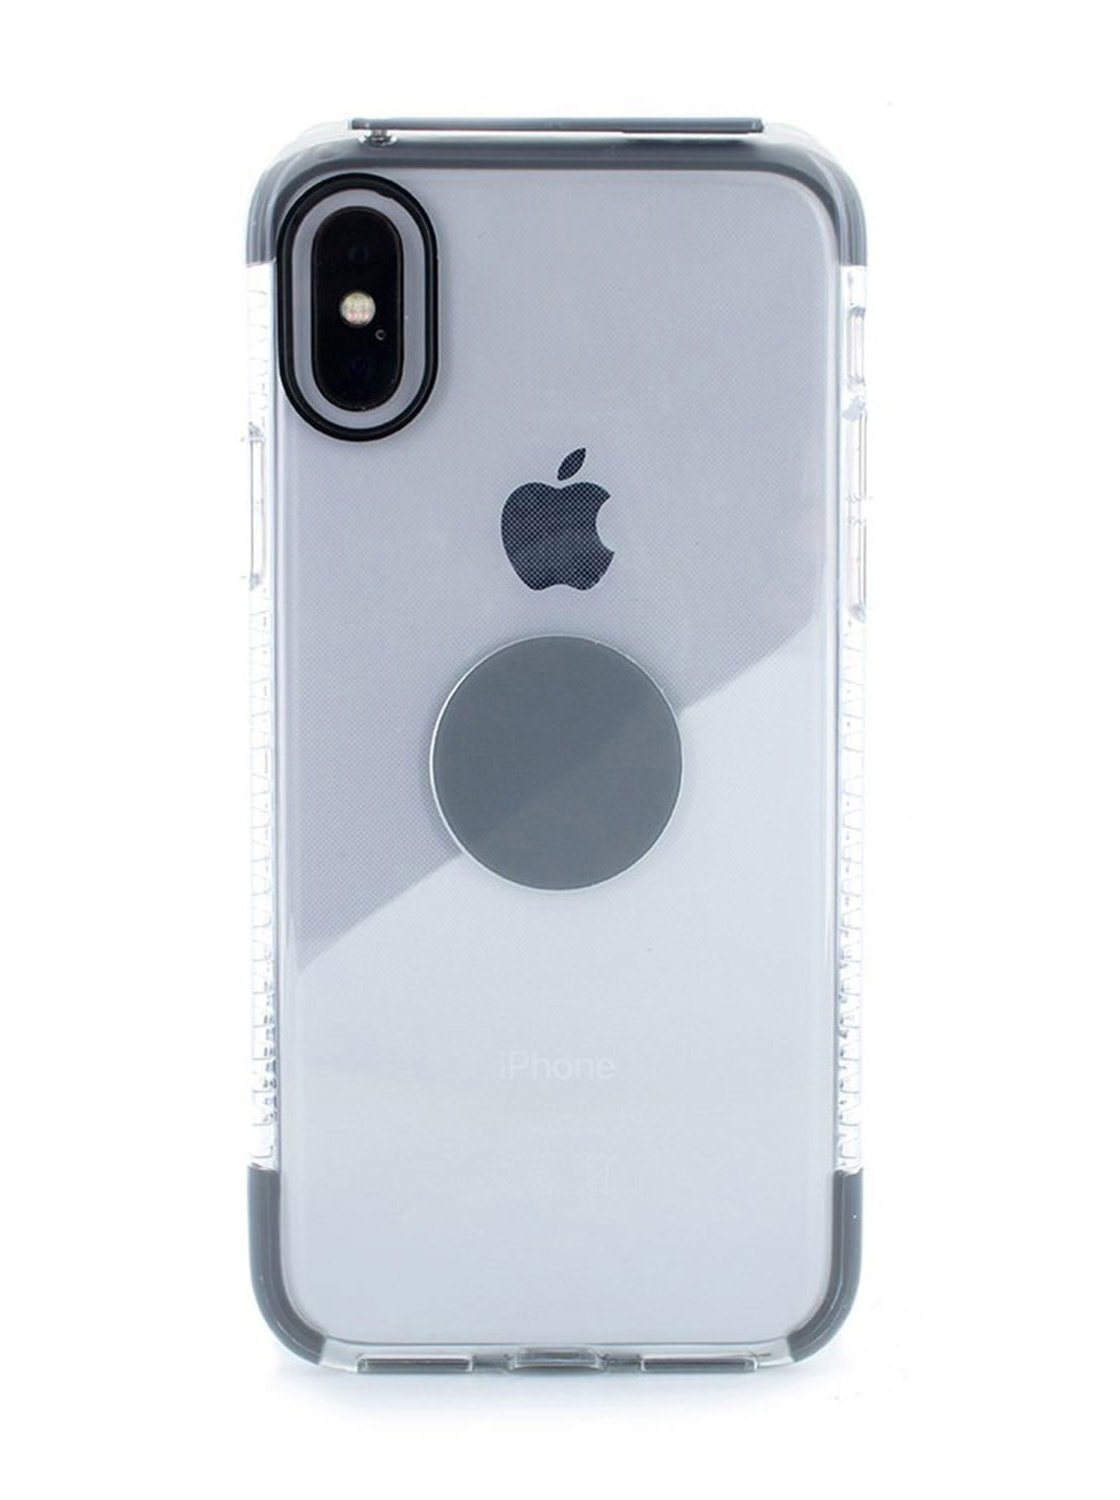 FLEX Anti Shock Kickstand Case for iPhone X / XS - Transparent